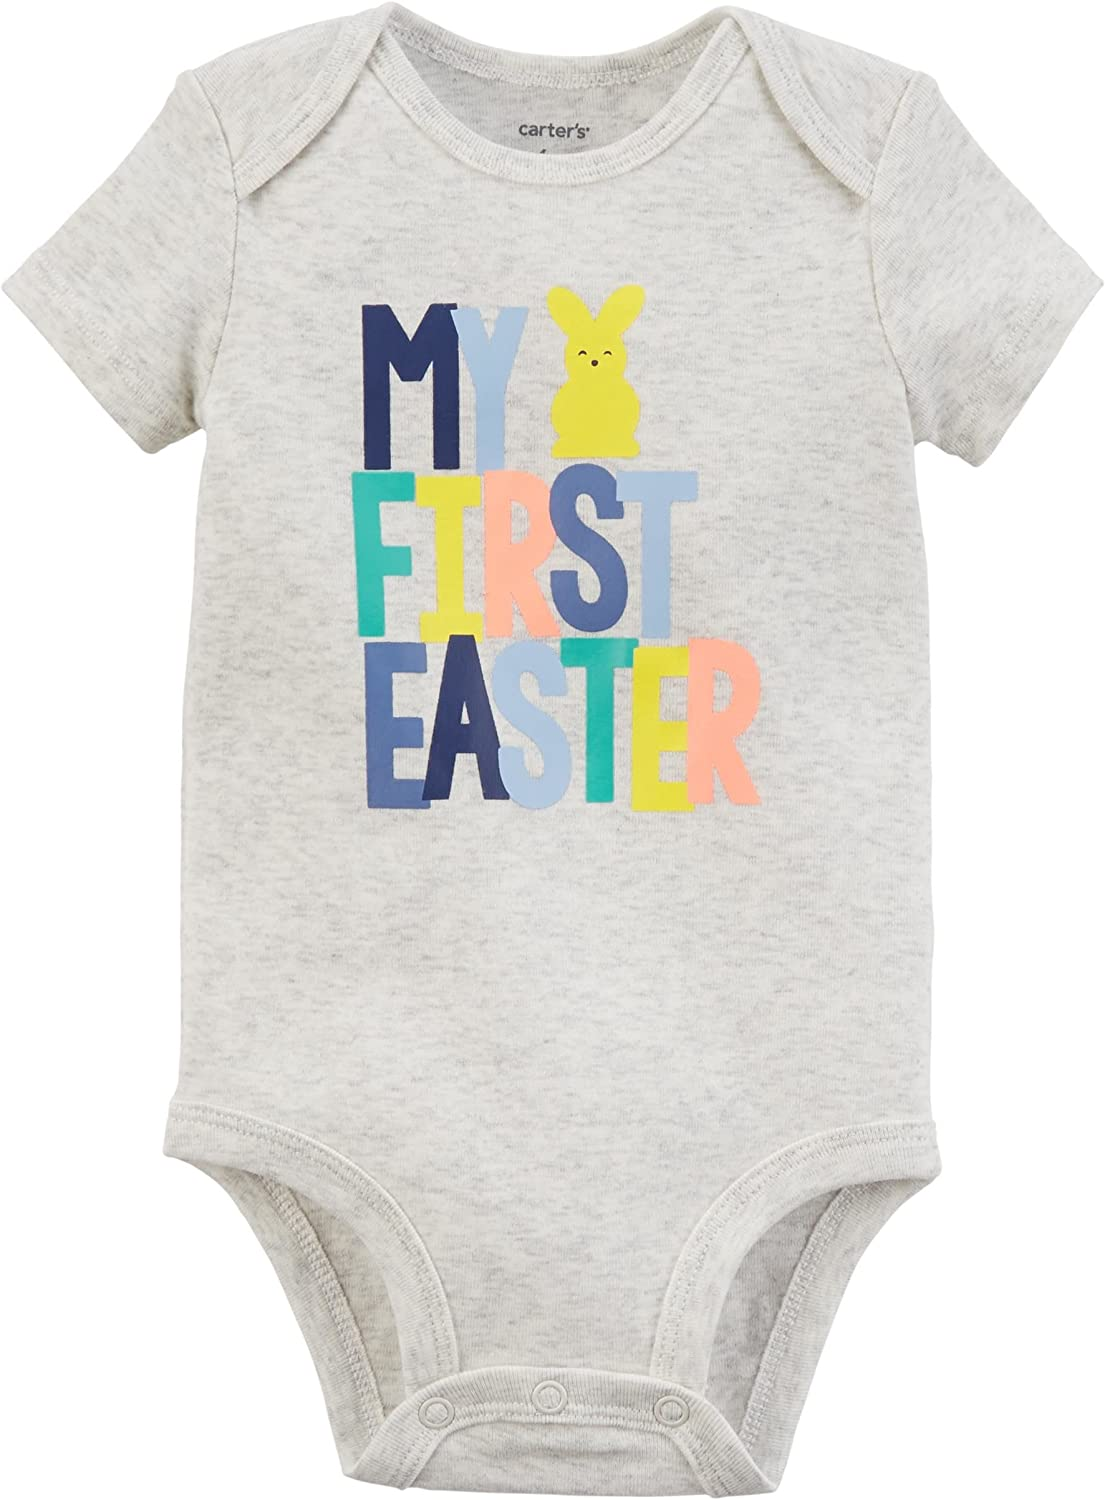 Carter\'s My First Easter Collectible Bodysuit - Newborn 815XVv2BP6FL